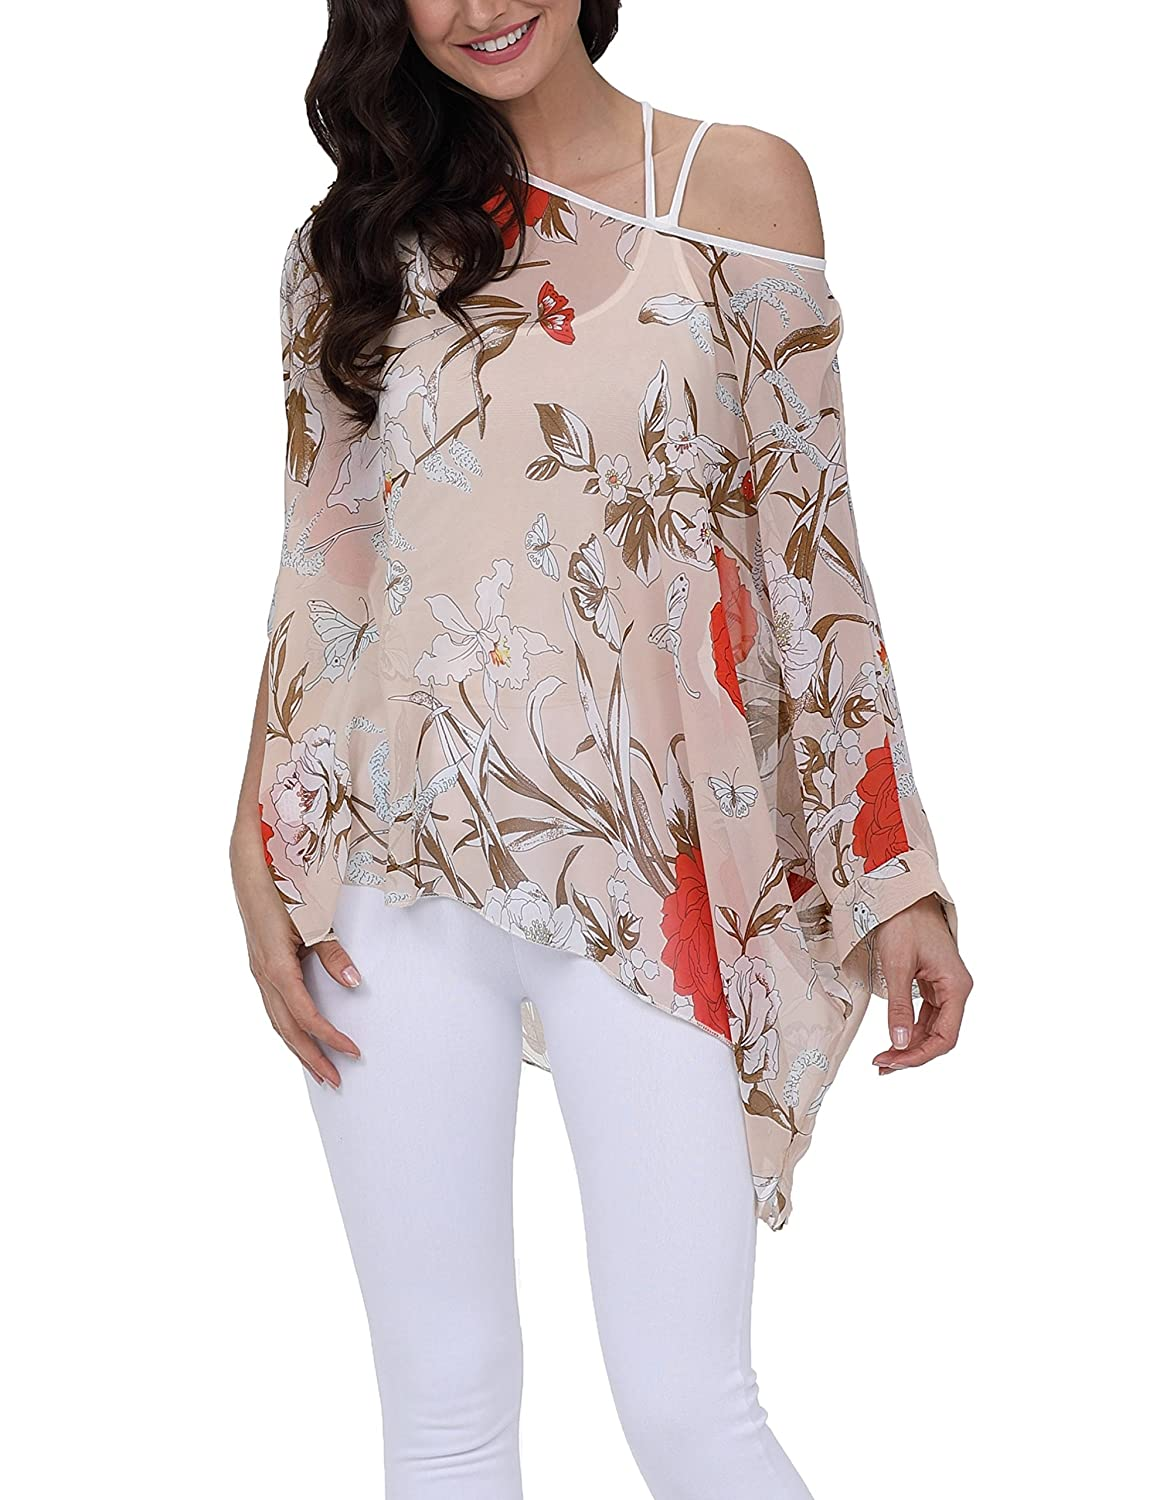 Vanbuy Women Summer Floral Printed Batwing Sleeve Top Chiffon Poncho Casual Loose Blouse Z91-4277